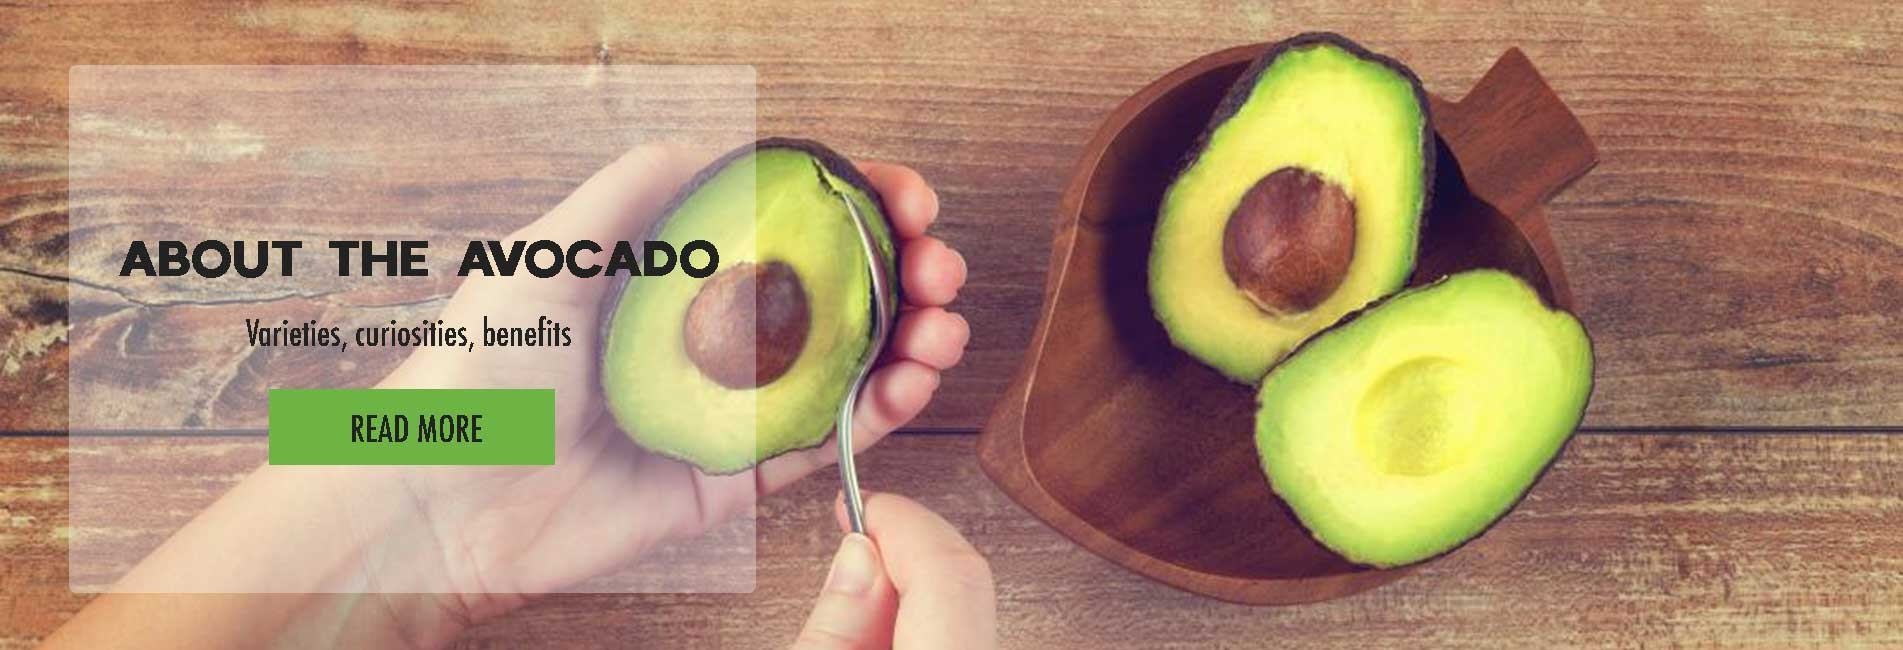 About the avocado